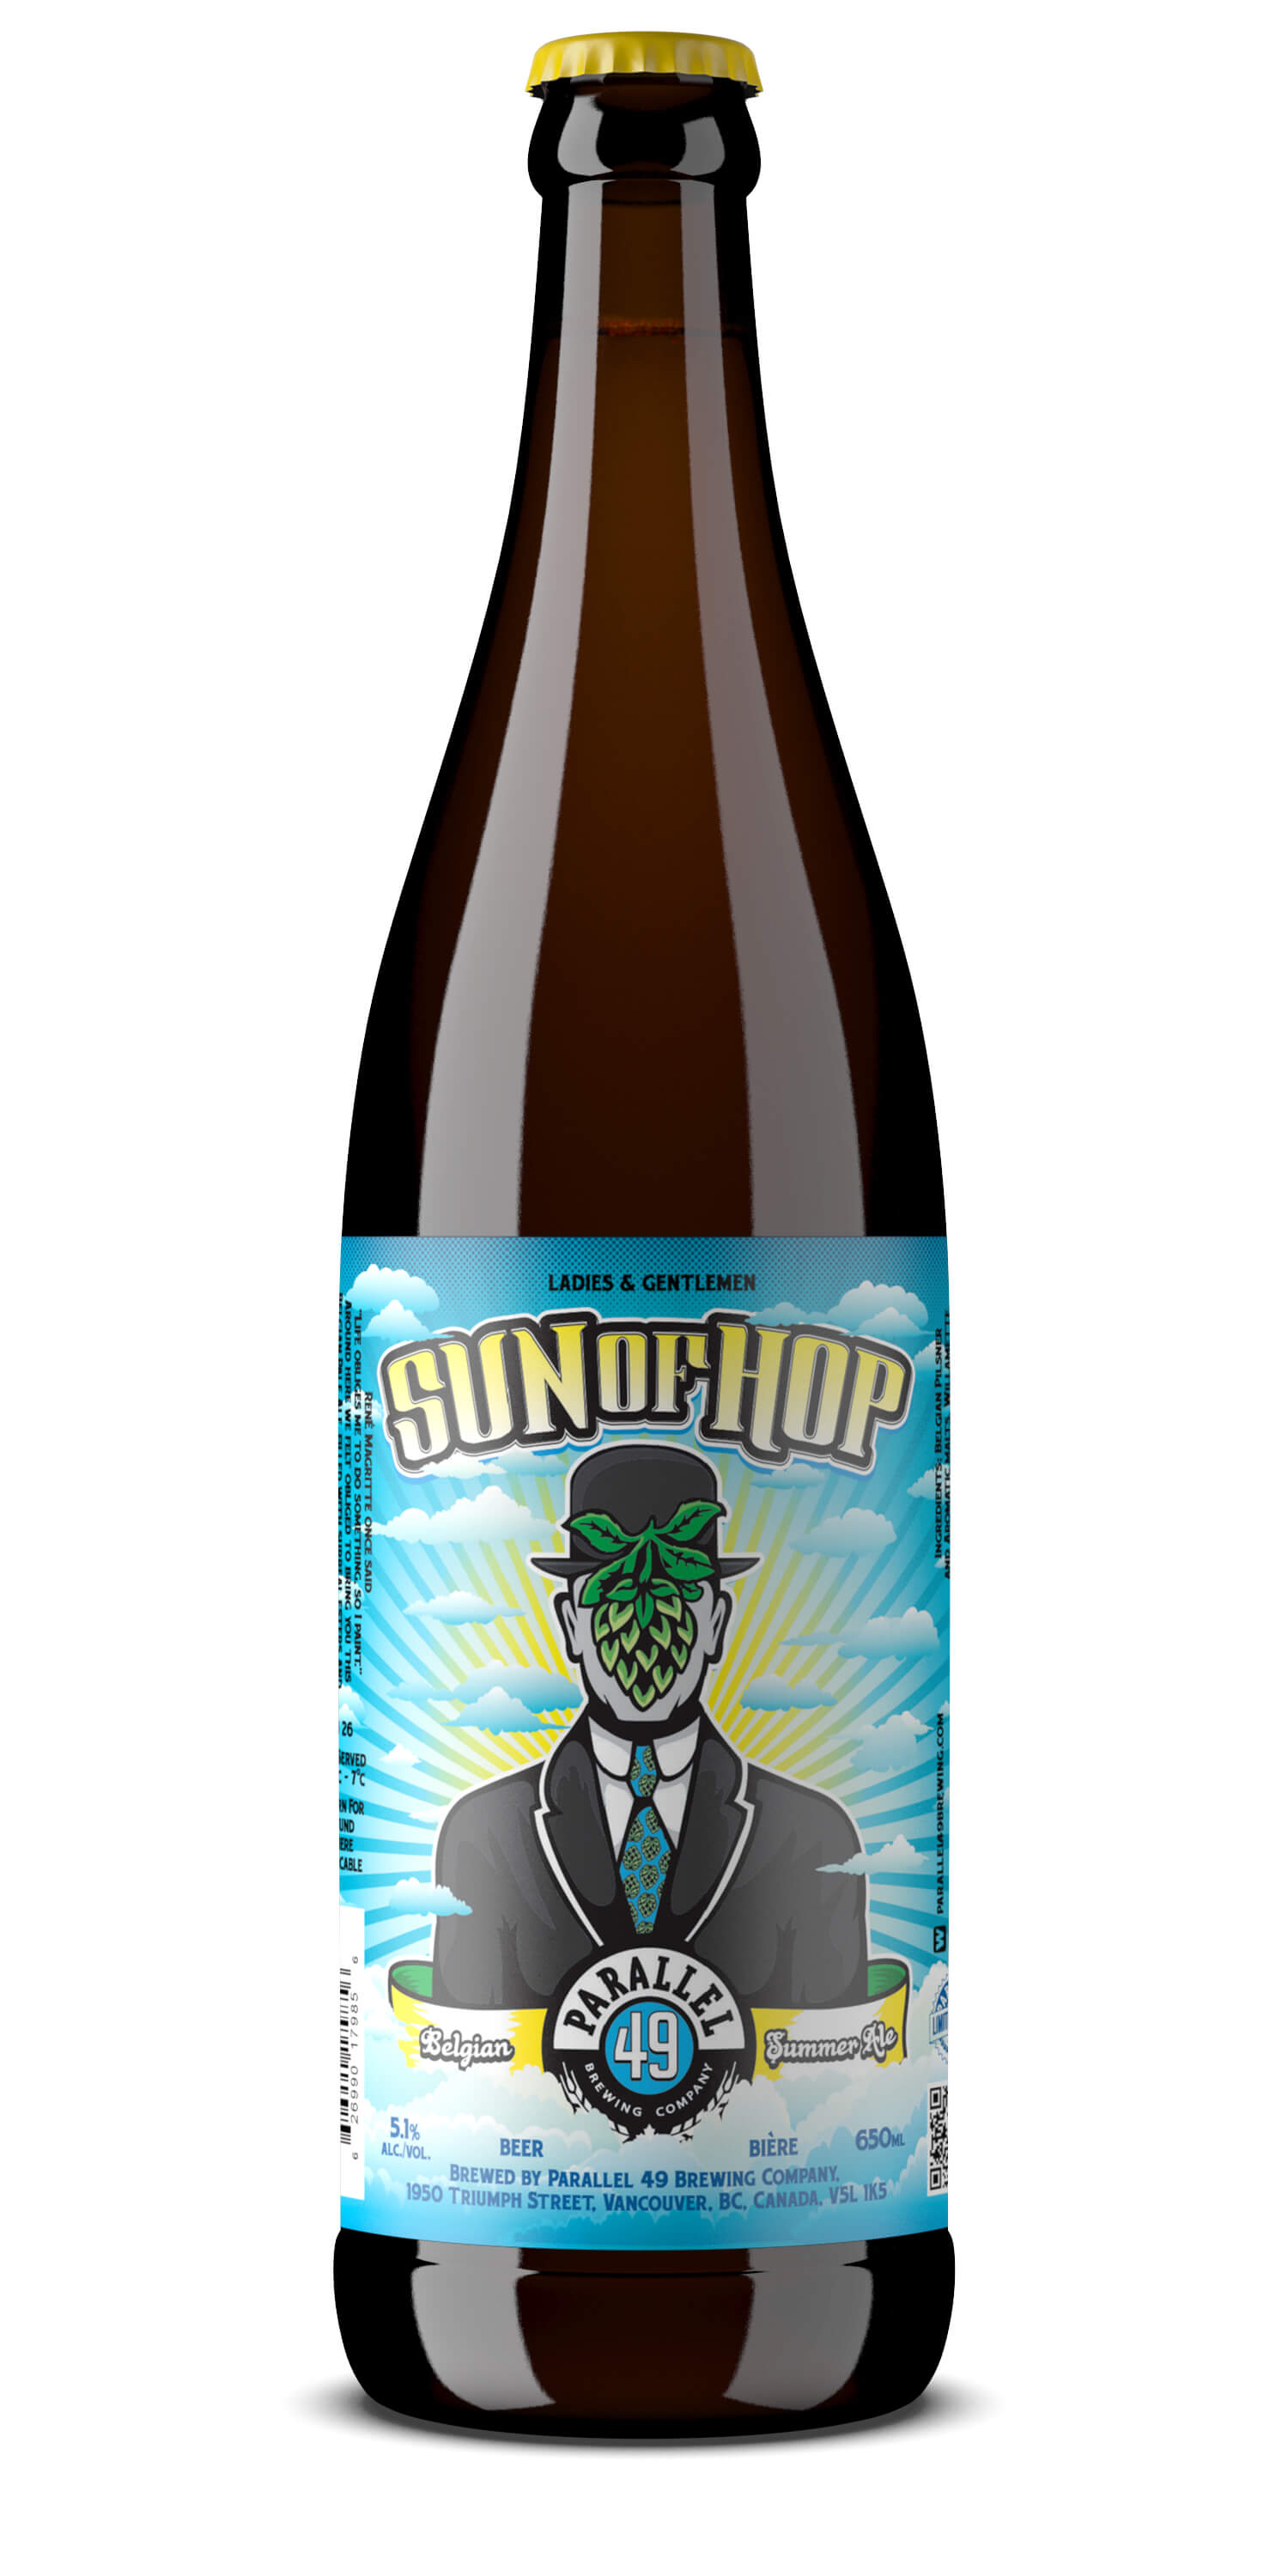 OUTSHINERY-Parallel49-SunOfHop.jpg